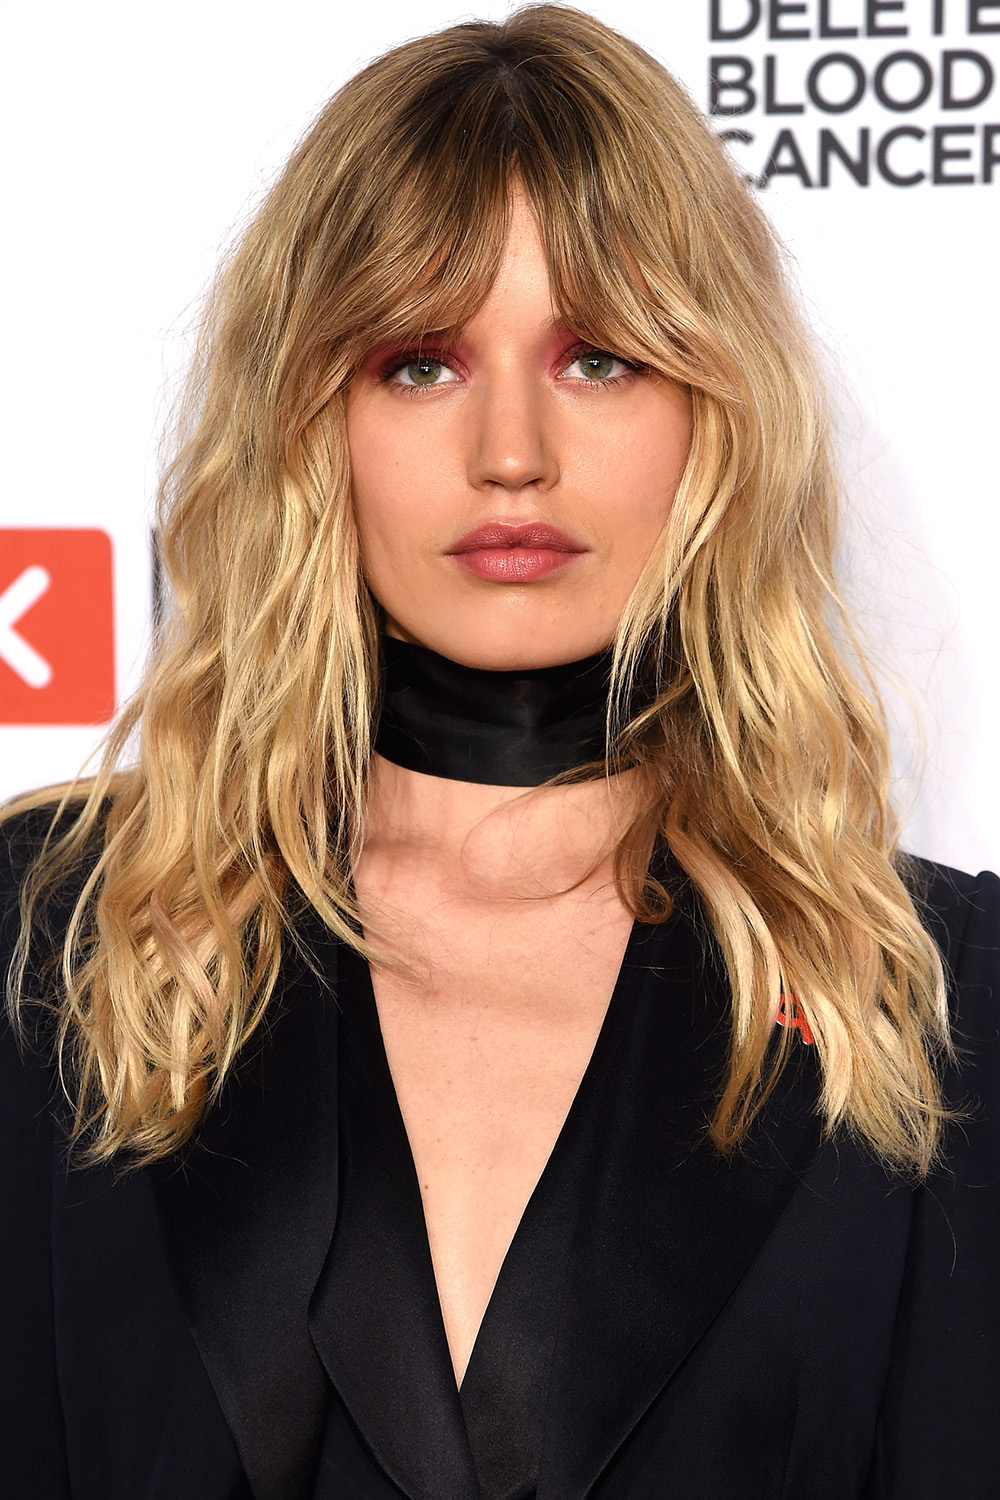 Enjoyable 33 Best Medium Hairstyles Celebrities With Shoulder Length Haircuts Short Hairstyles Gunalazisus